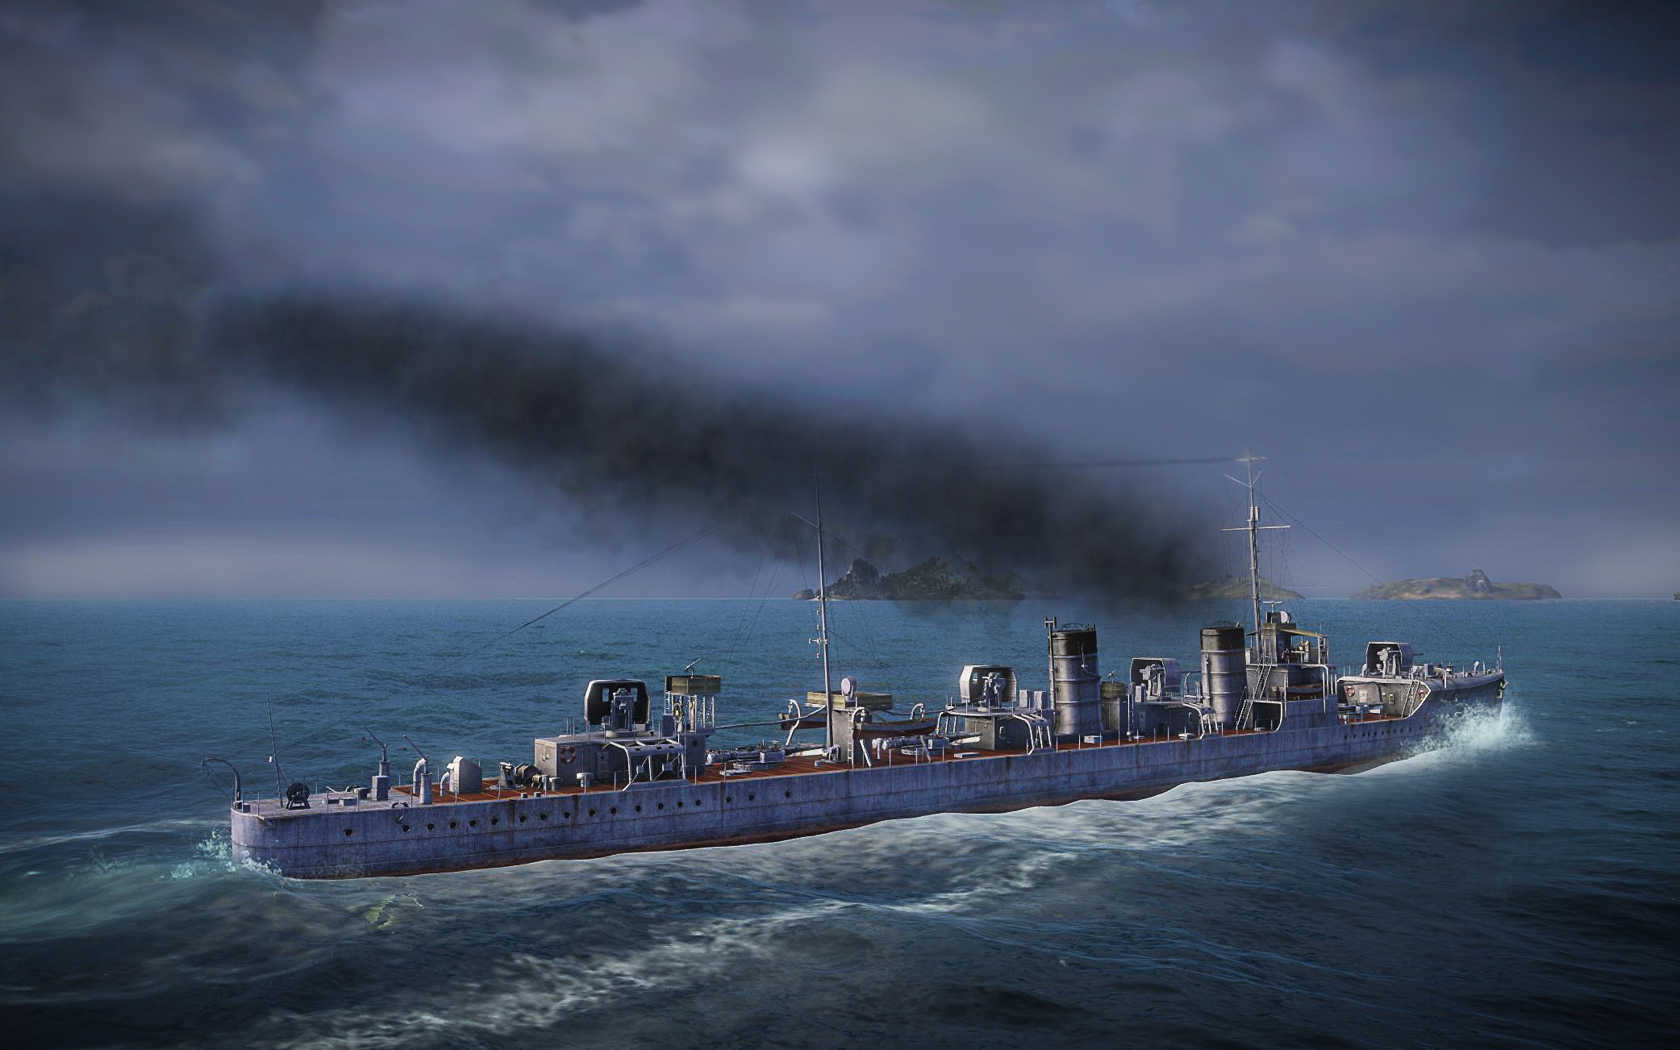 wows_screens_vessels_no_logo_gk_2014_image_1